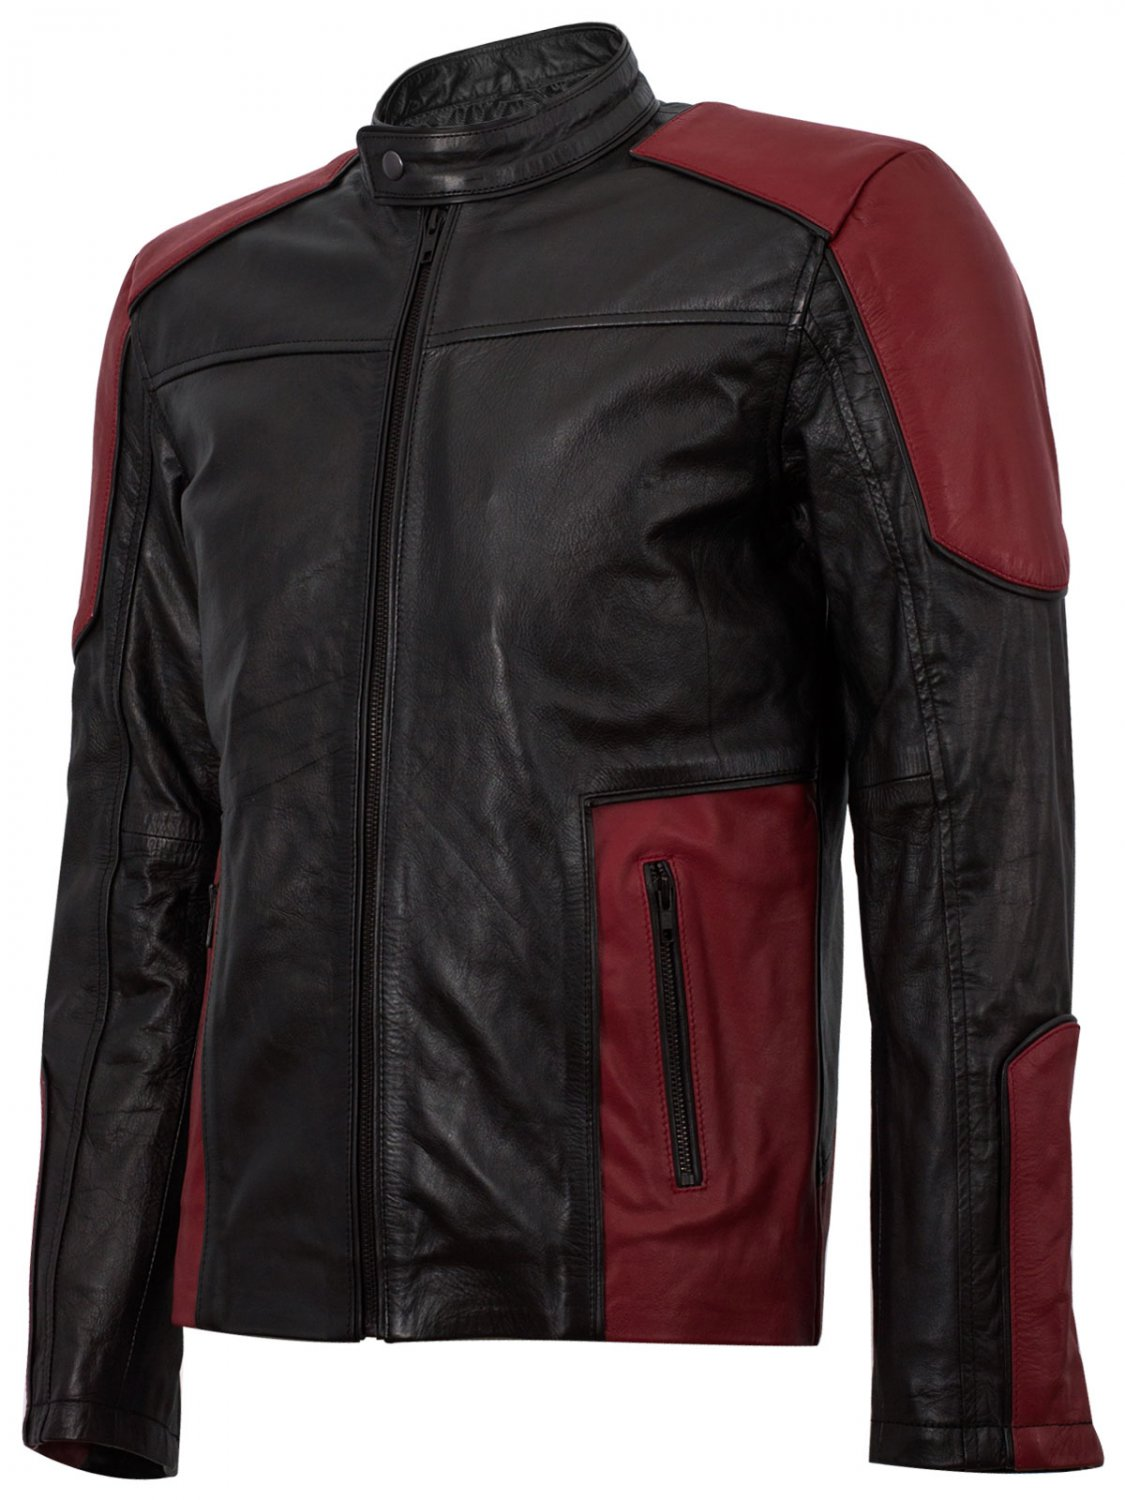 Suicide Squad Will Smith Cosplay Deadshot Leather Costume Jacket